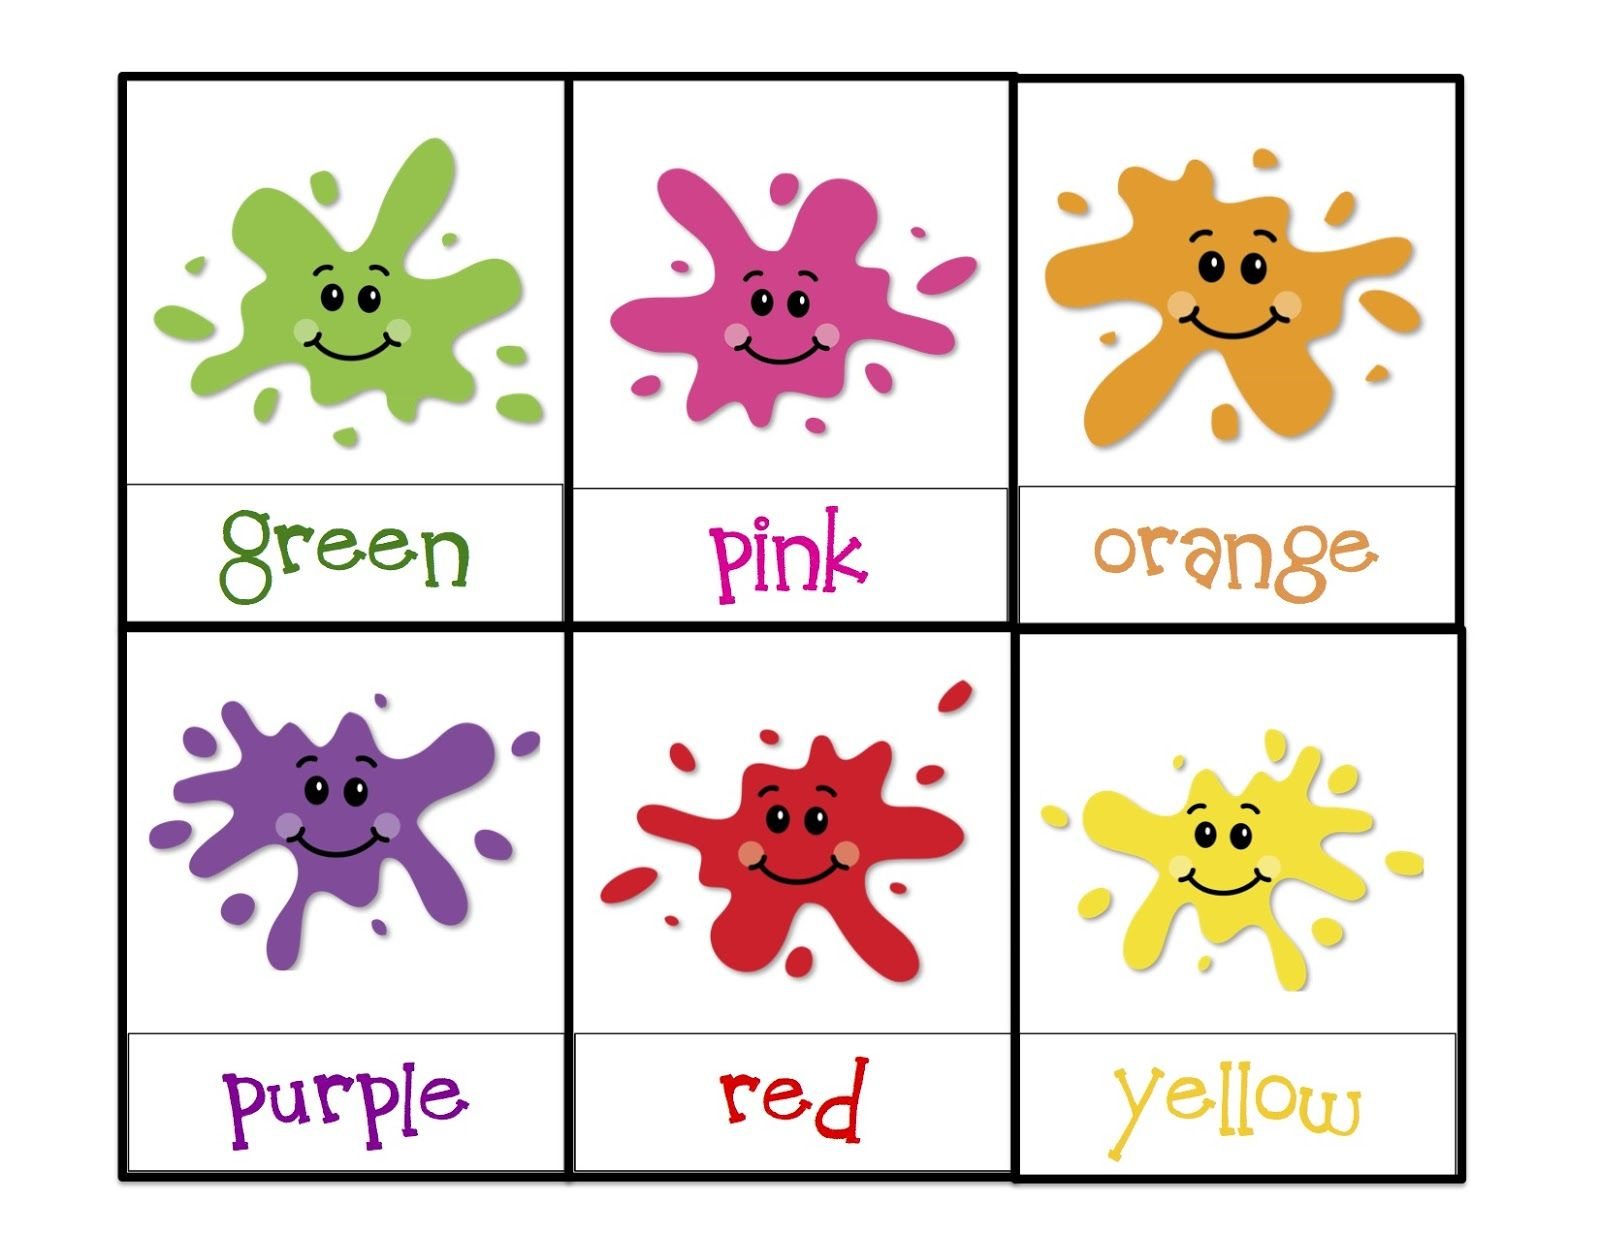 Printable color matching games for preschoolers - Preschool Printables Learning Colors Printable Use With Items Of Those Colors To Match Up